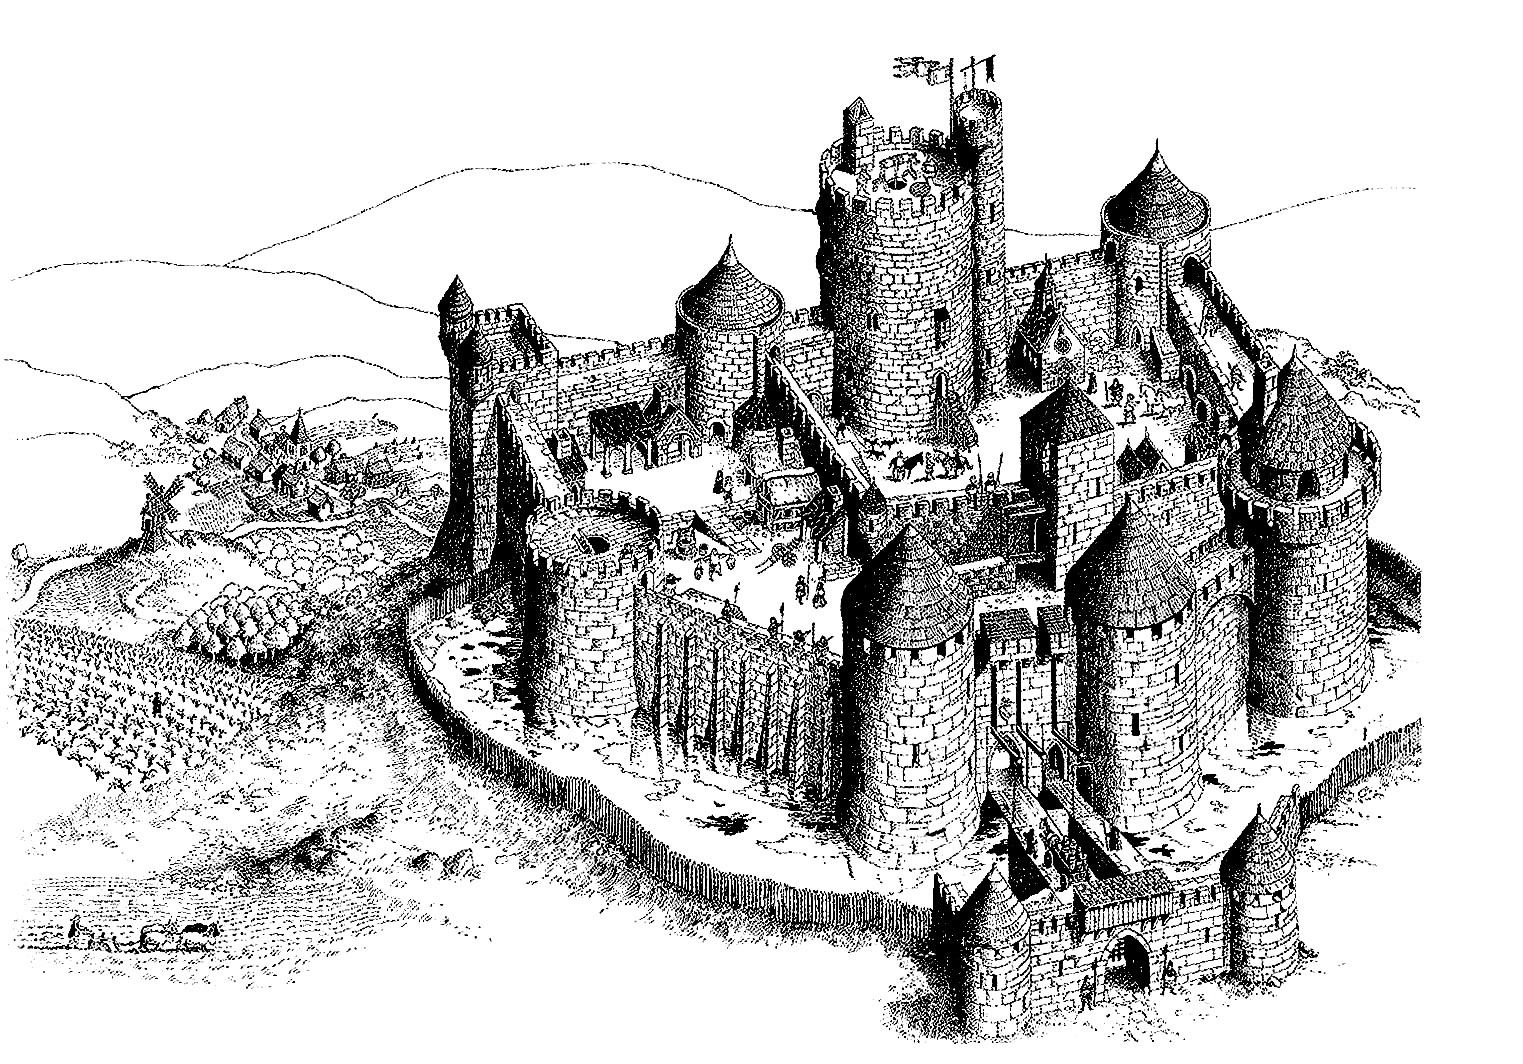 Coloring Pages For Adults Castle : Middle ages coloring pages for adults adult